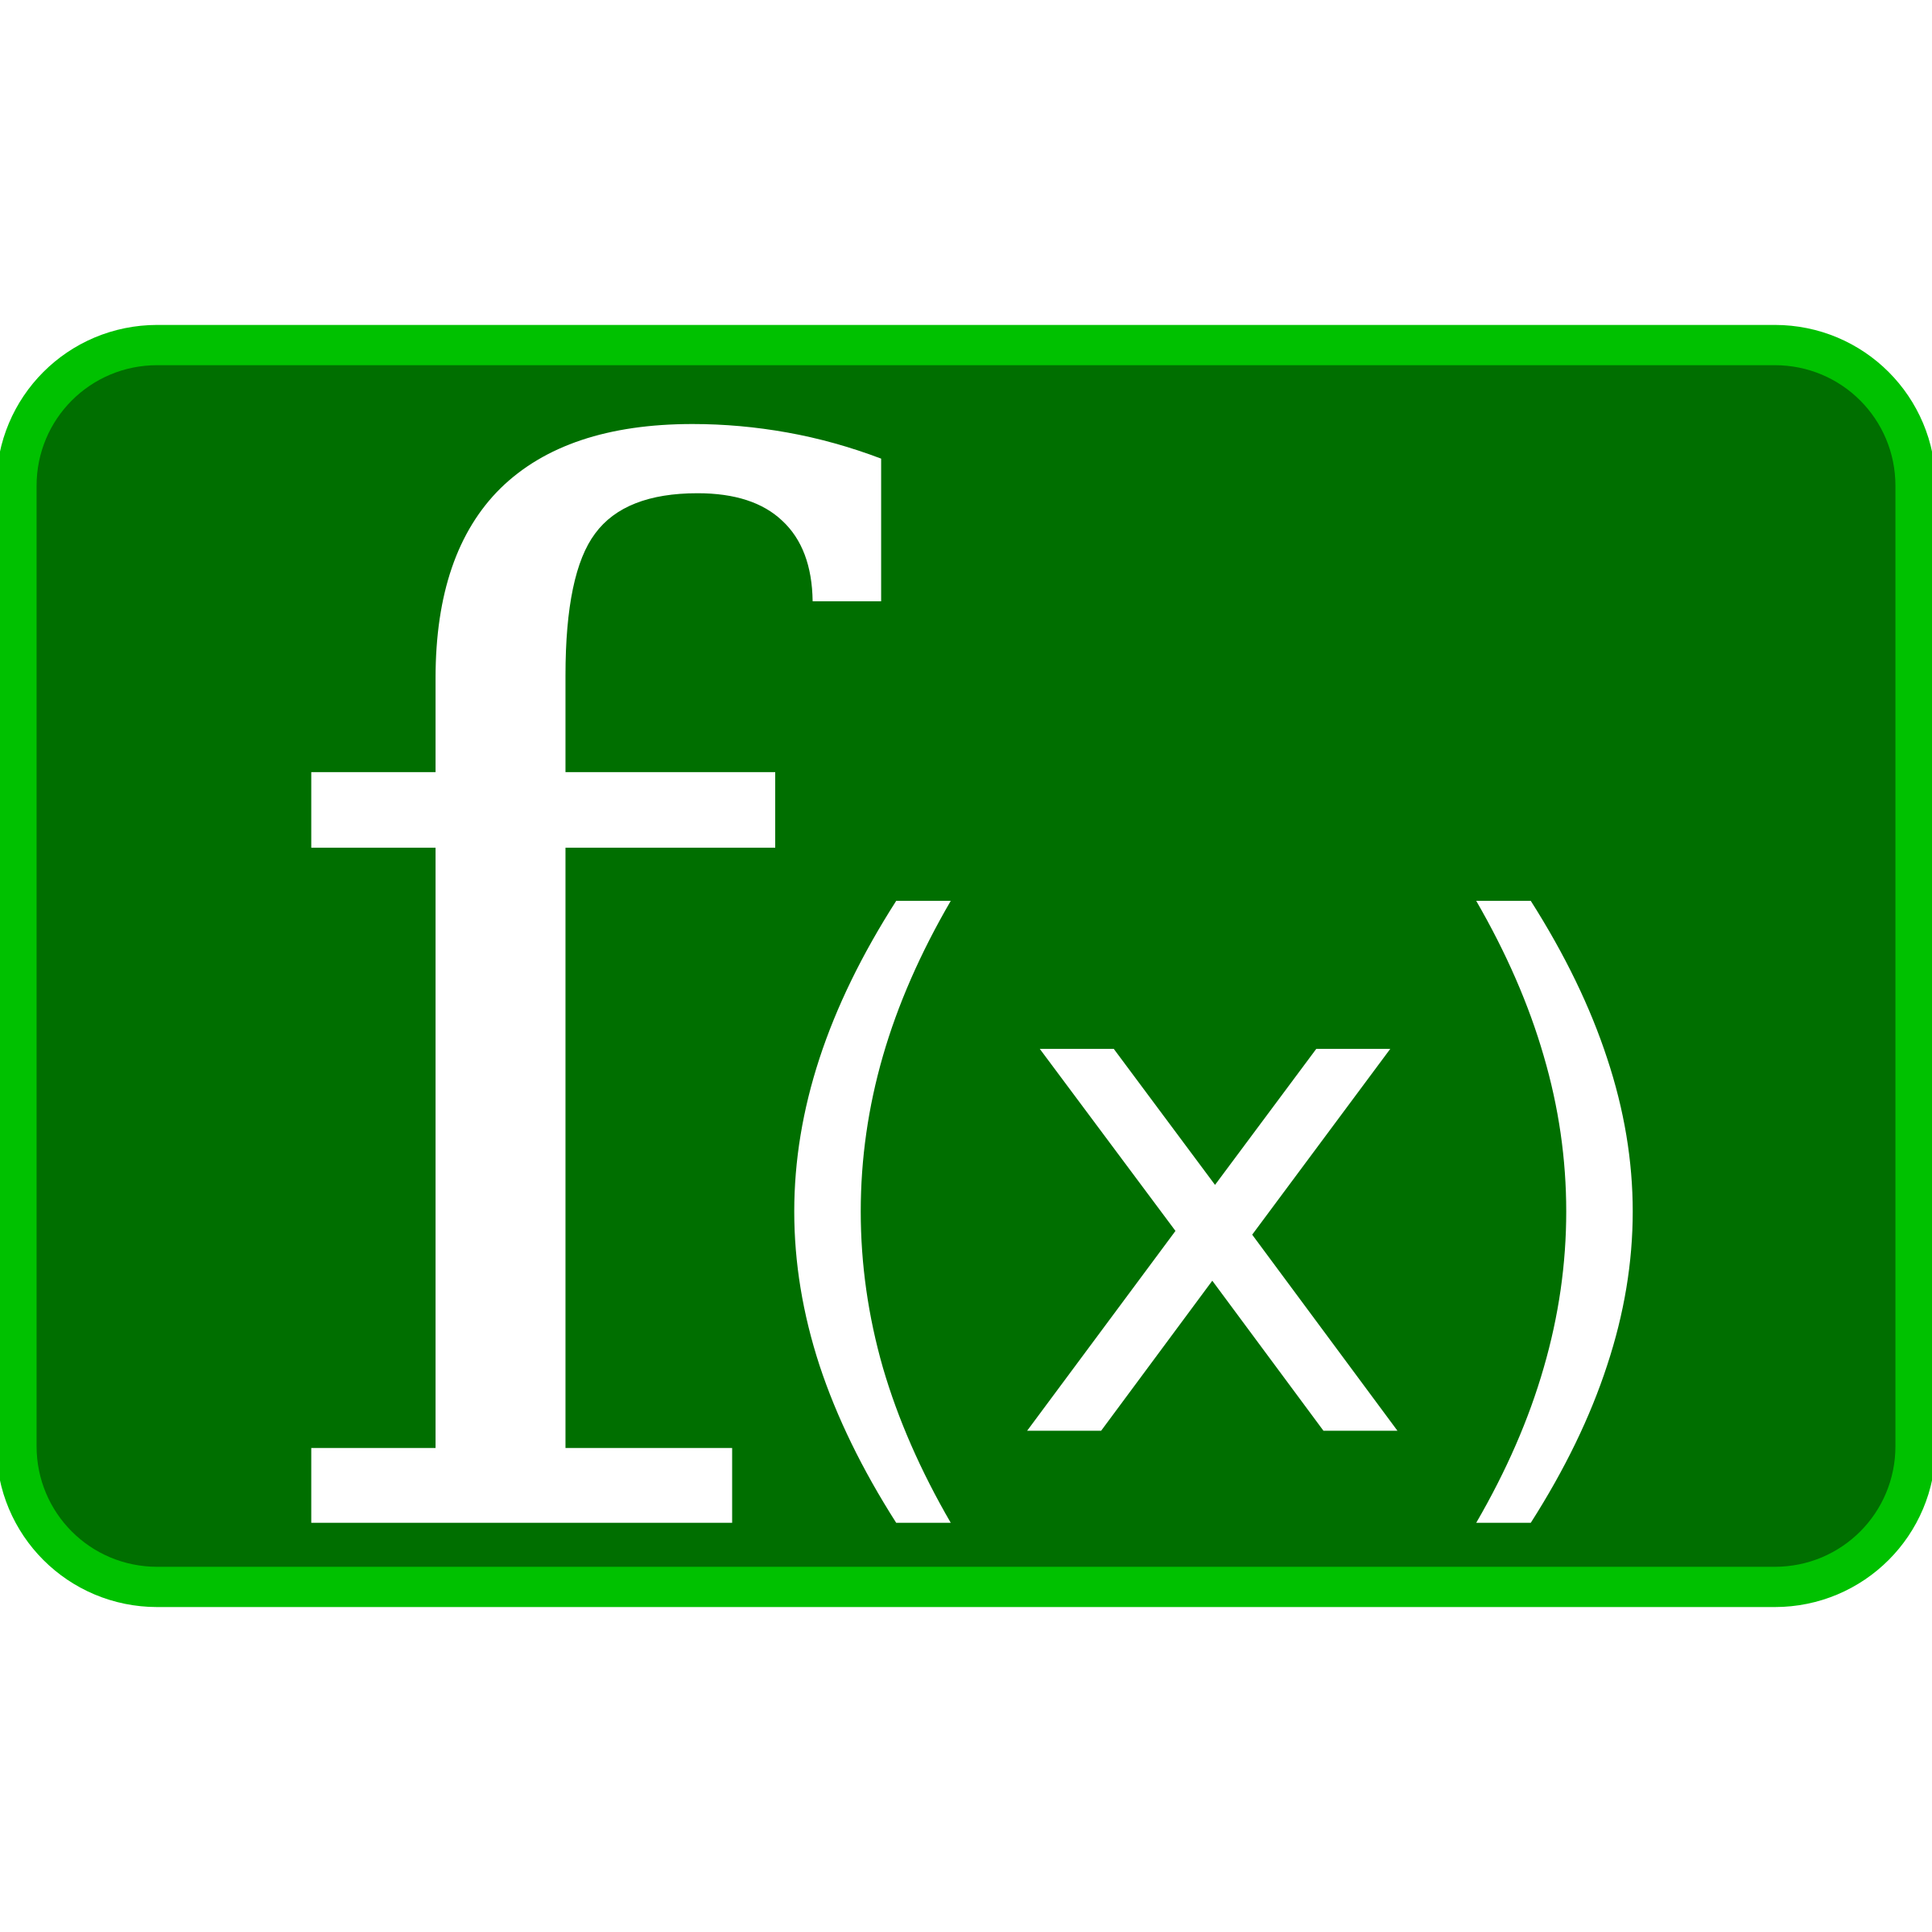 Function icon big image. Number 2 clipart green